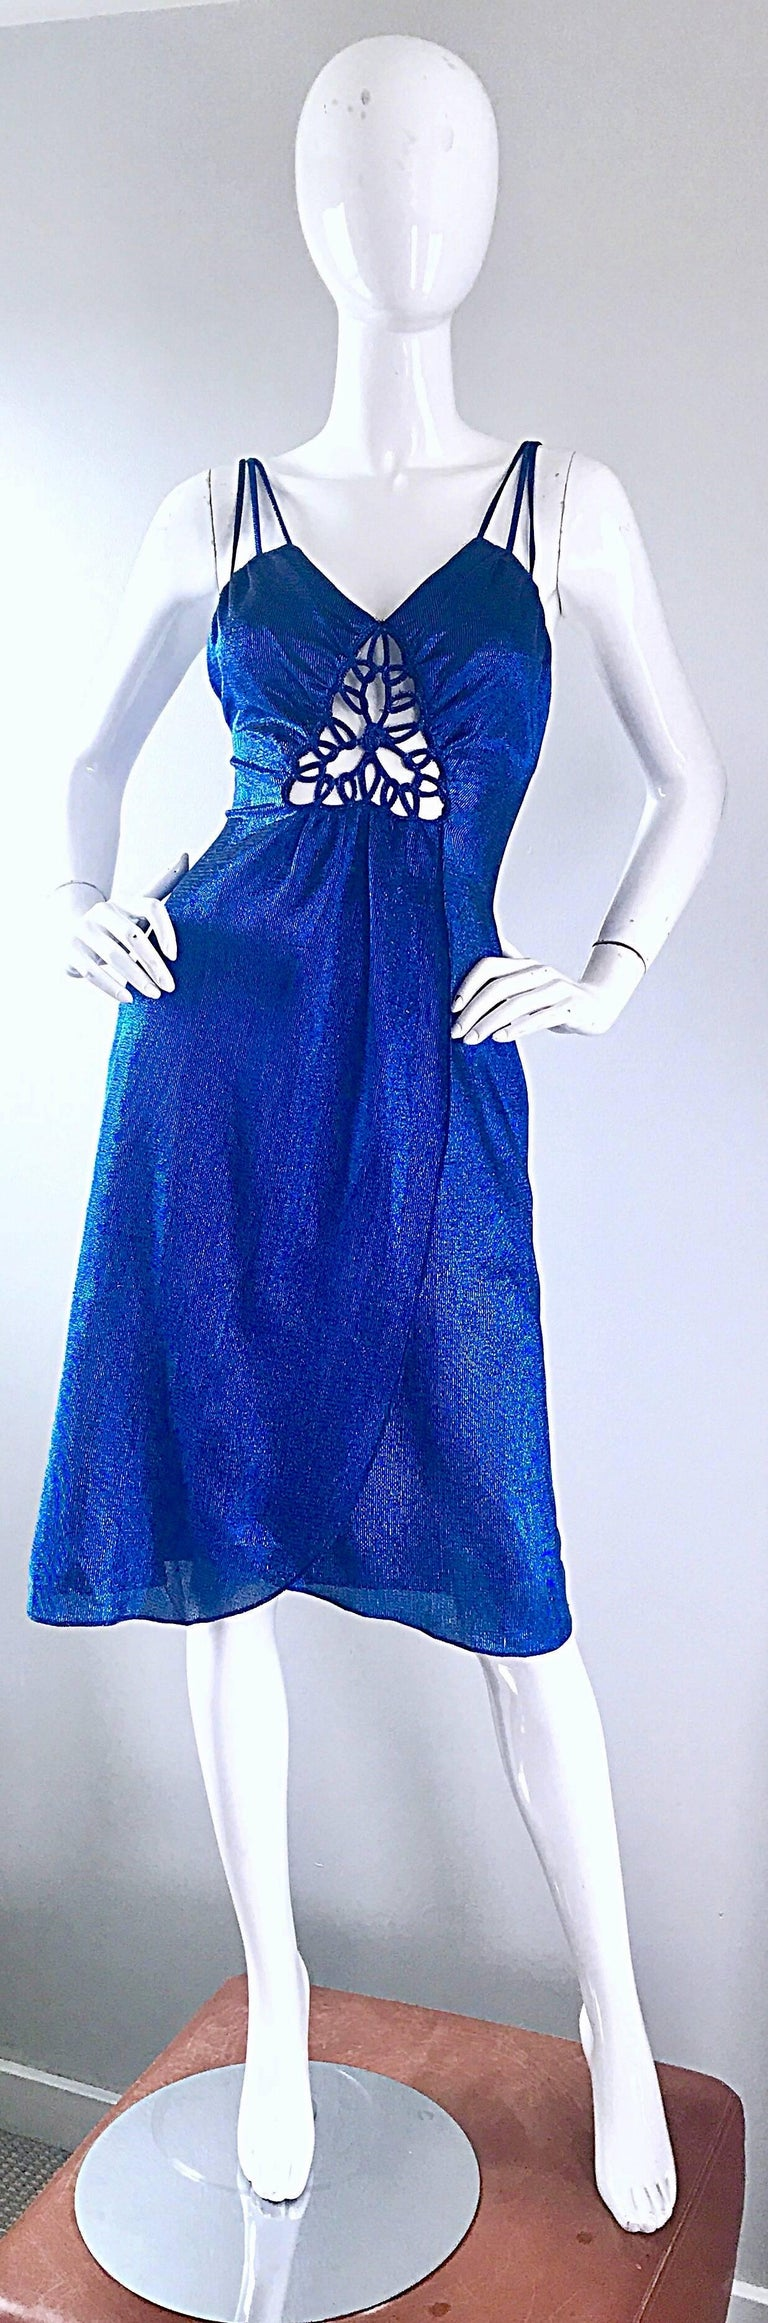 Sexy 1970s SAMIR electric blue metallic slinky cut-out dress! Features an intricately cut-out detail at center bust. Hidden zipper up the back. Three straps at each shoulder. Flattering flirty wrap style skirt, with a fitted bodice. Looks amazing